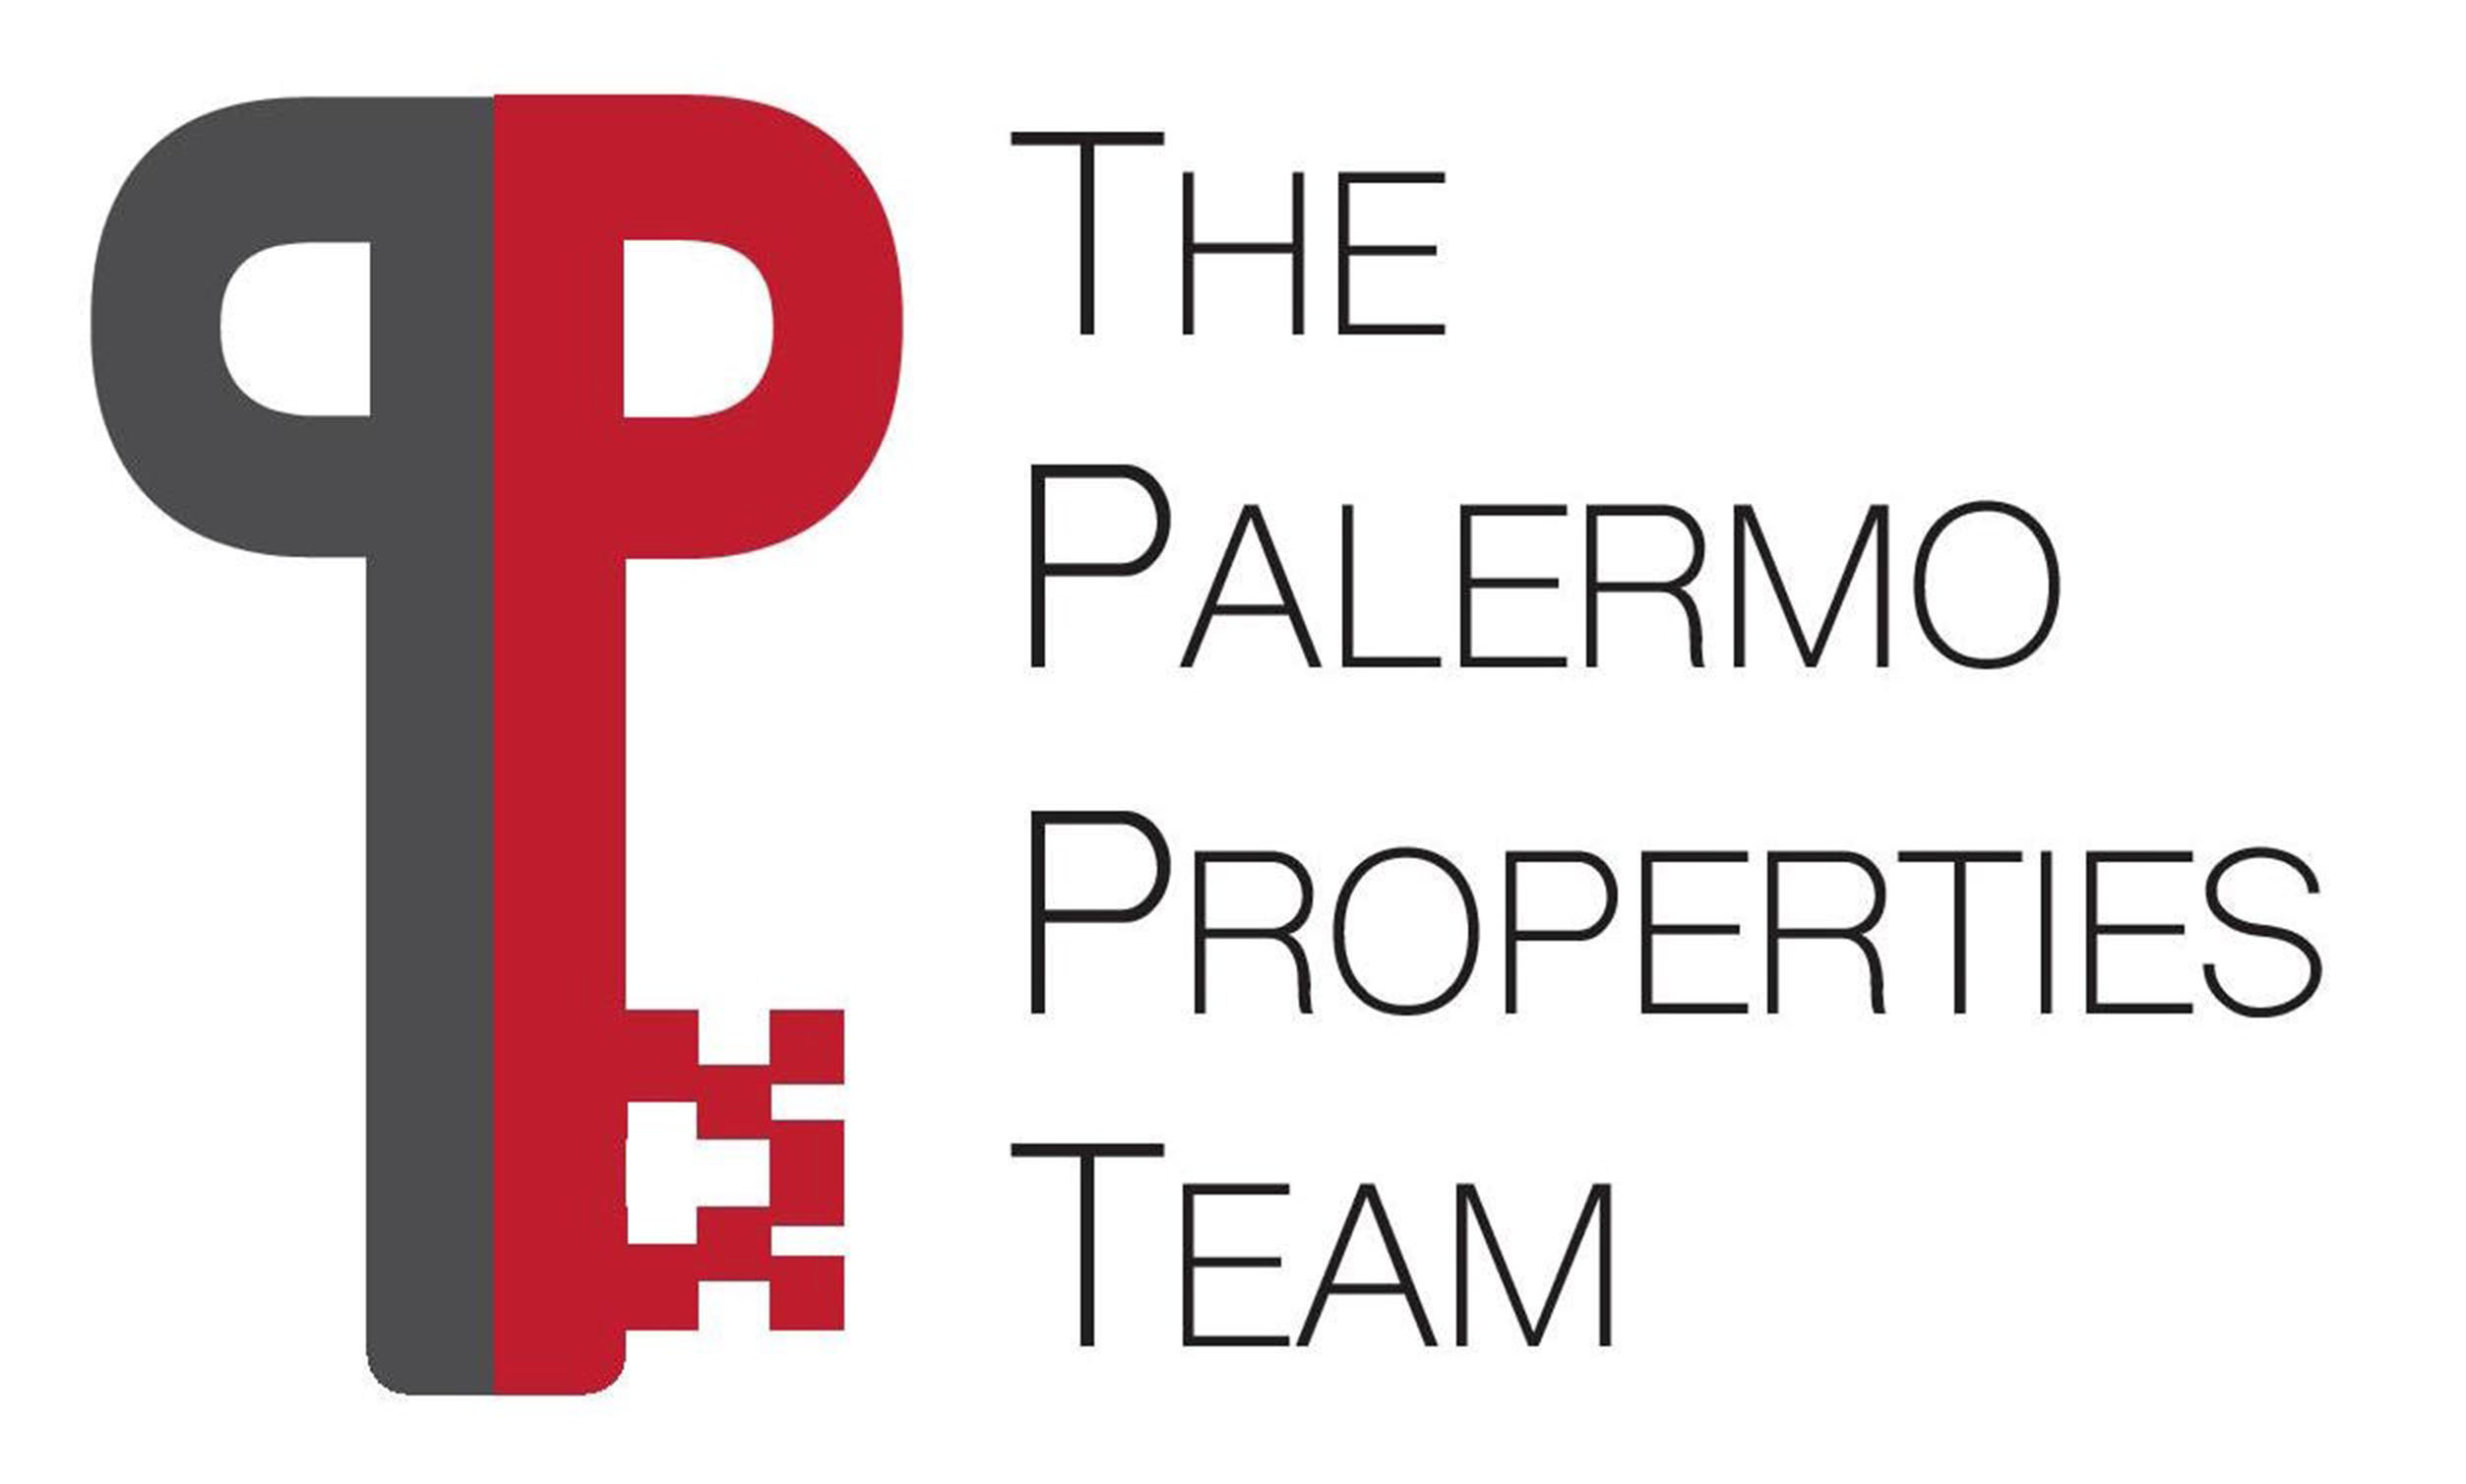 Stephanie Sills, REALTOR® - The Palermo Properties Team